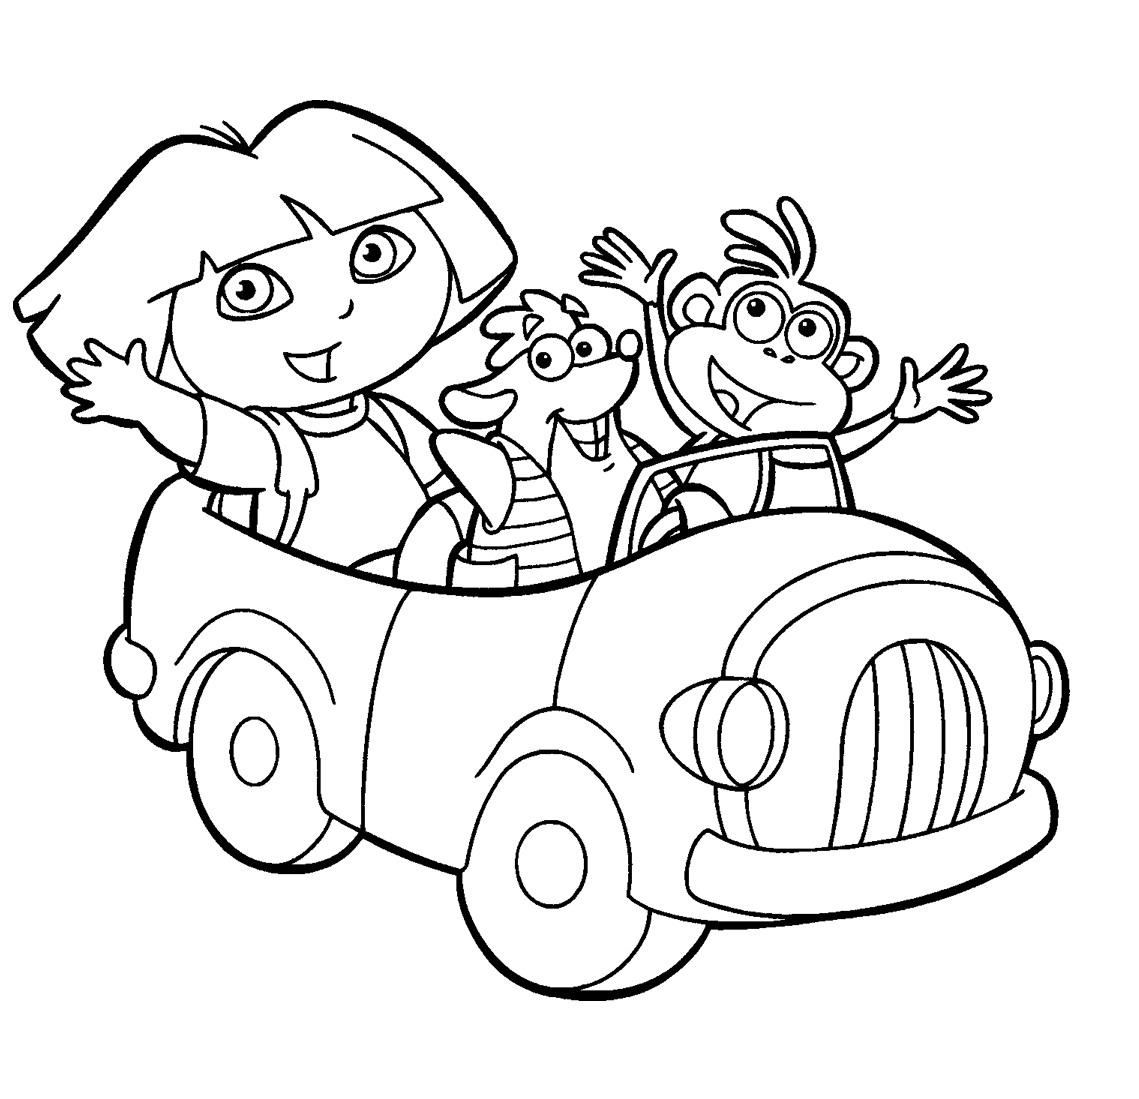 coloring picture of dora dora coloring pages getcoloringpagescom of coloring picture dora